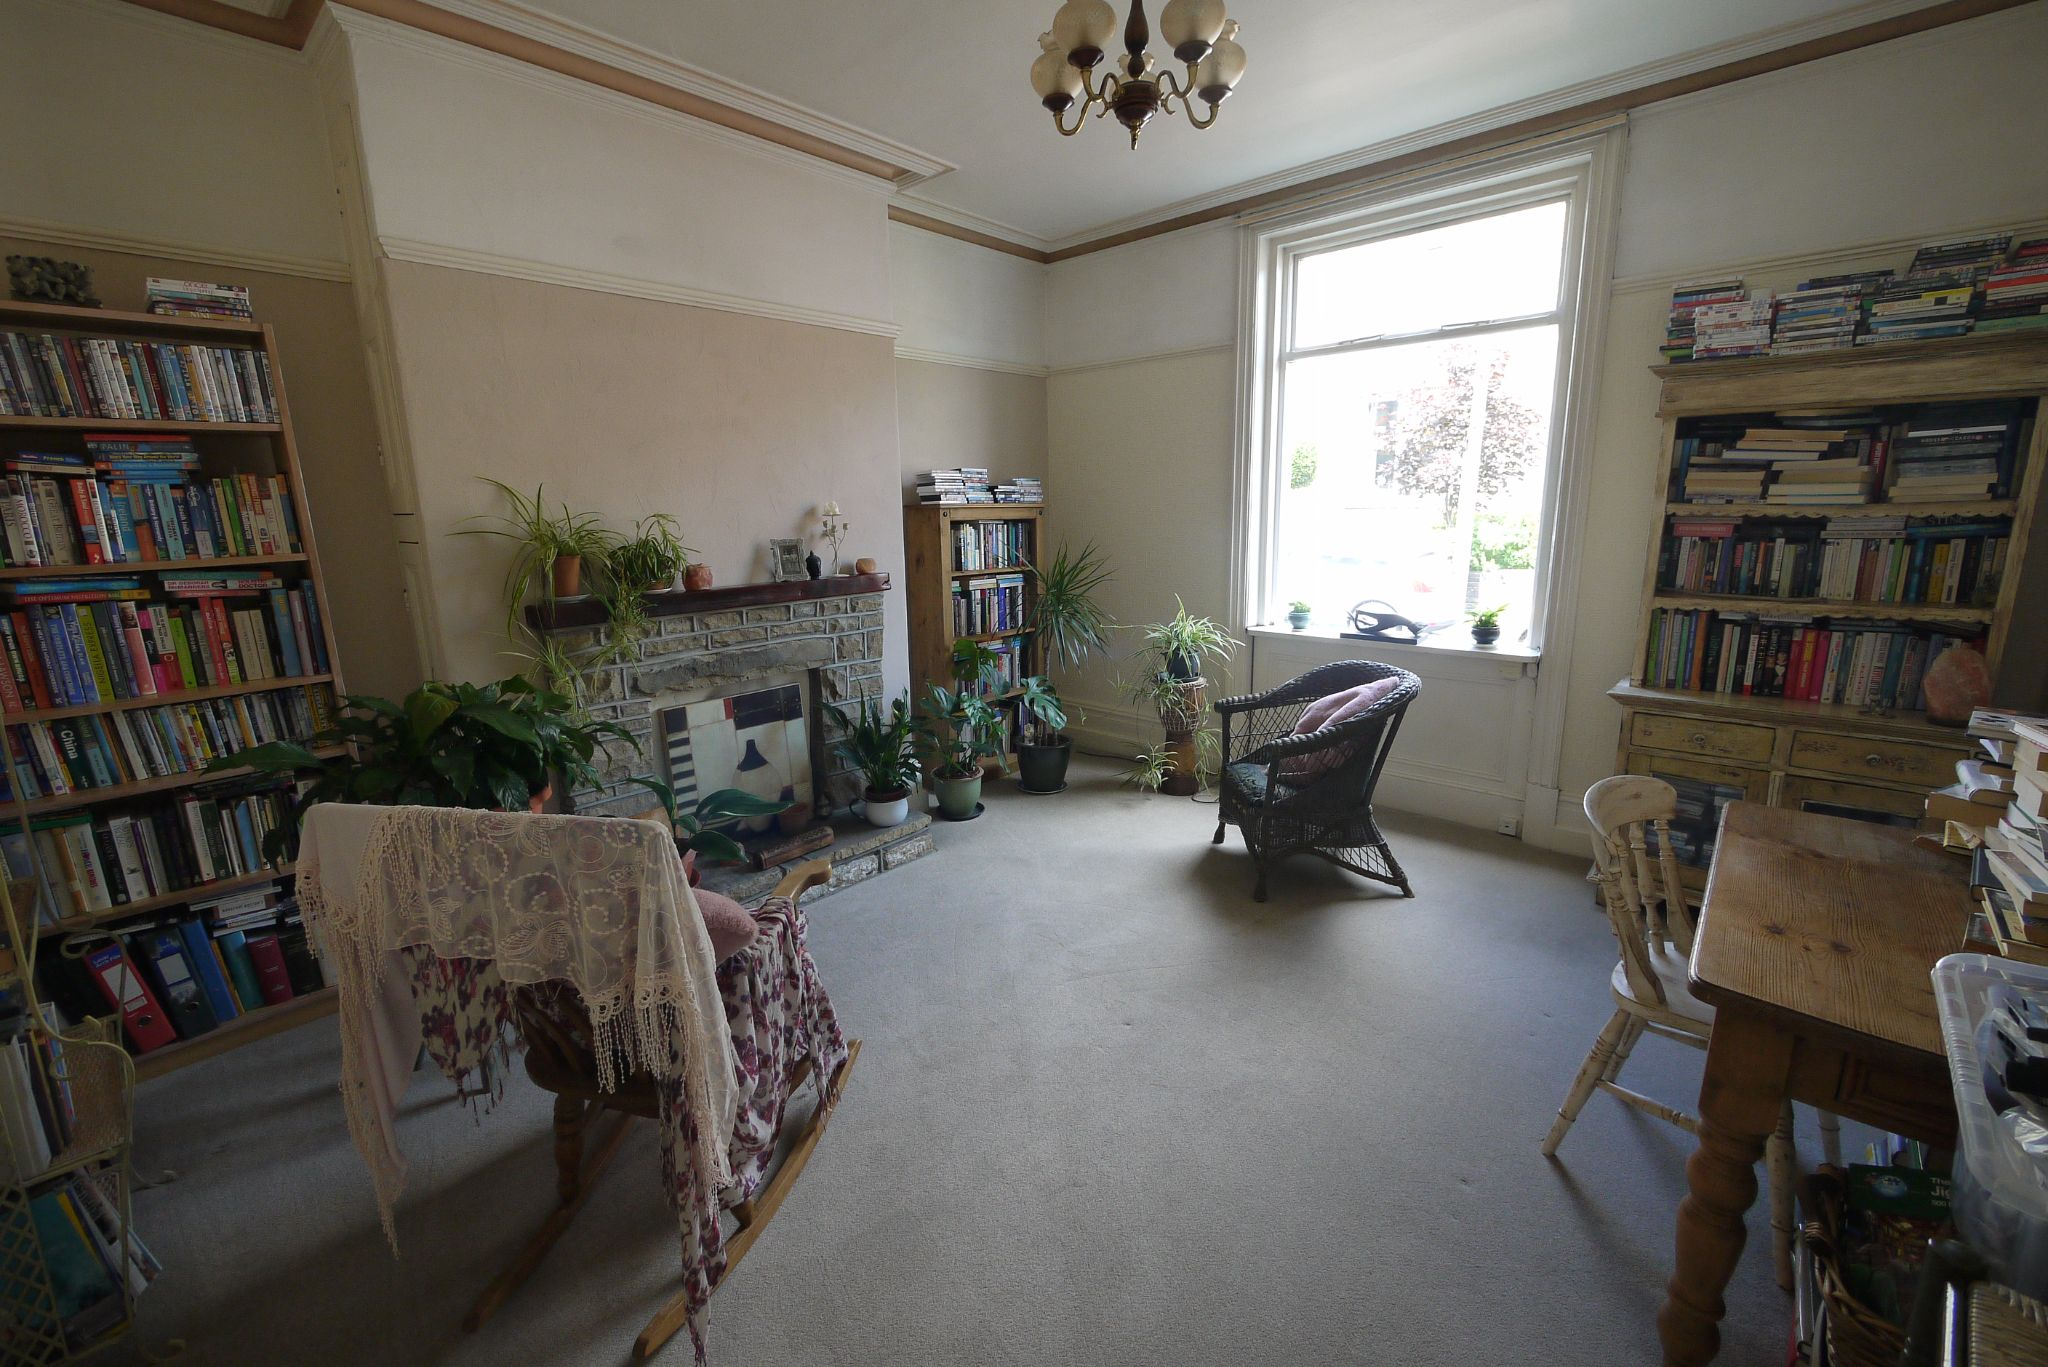 5 bedroom mid terraced house For Sale in Brighouse - Lounge.